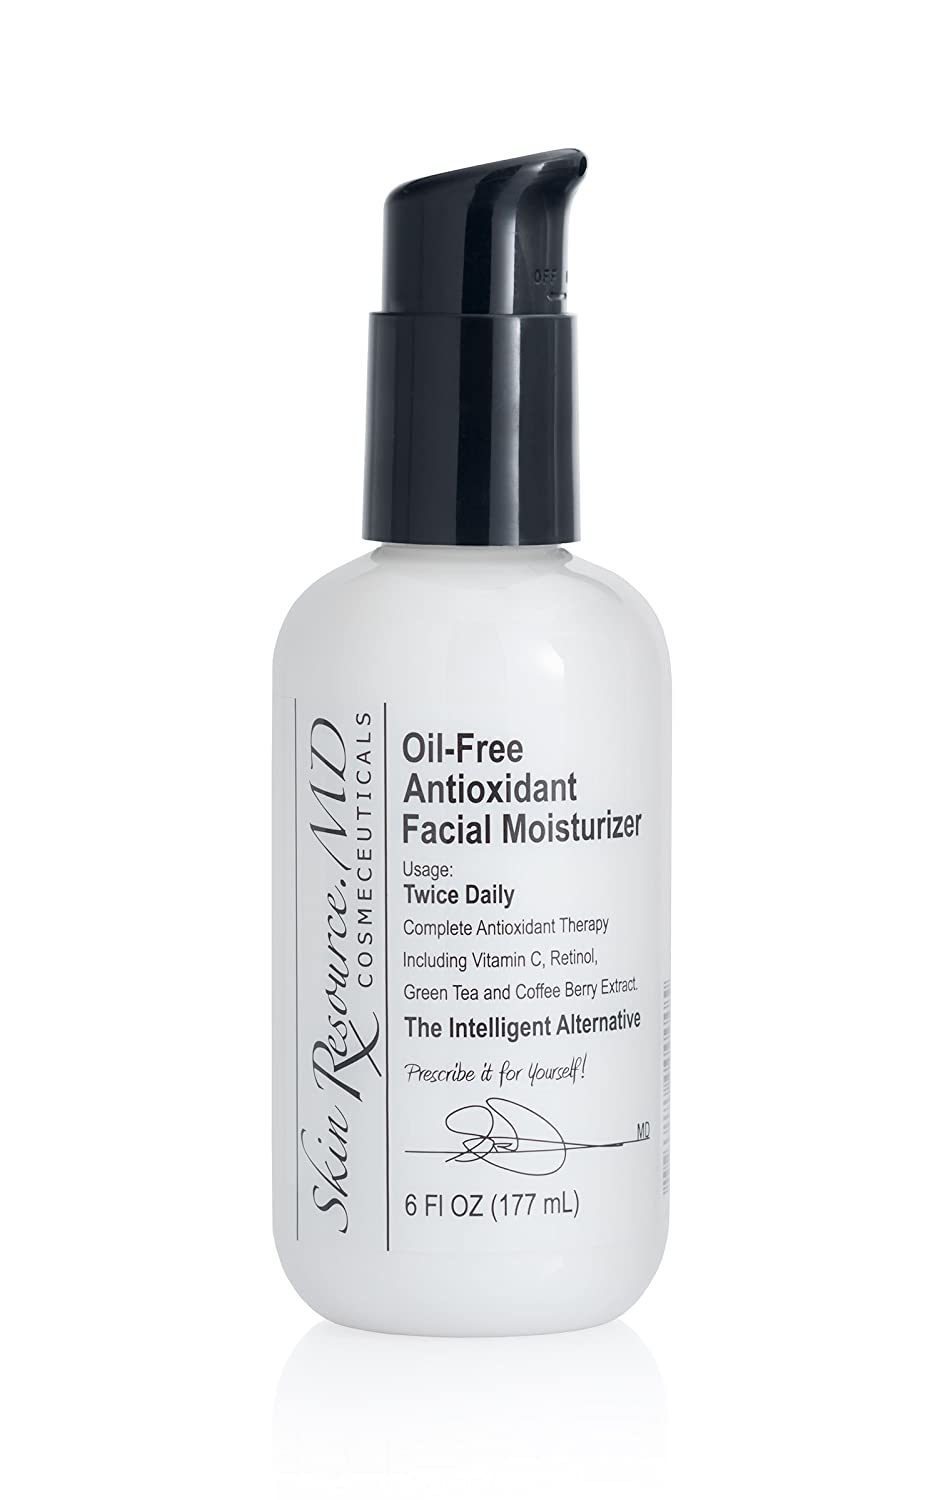 Skin Resource.MD Oil-Free Antioxidant Facial Moisturizer - Highest Rating by Dermatologists #1